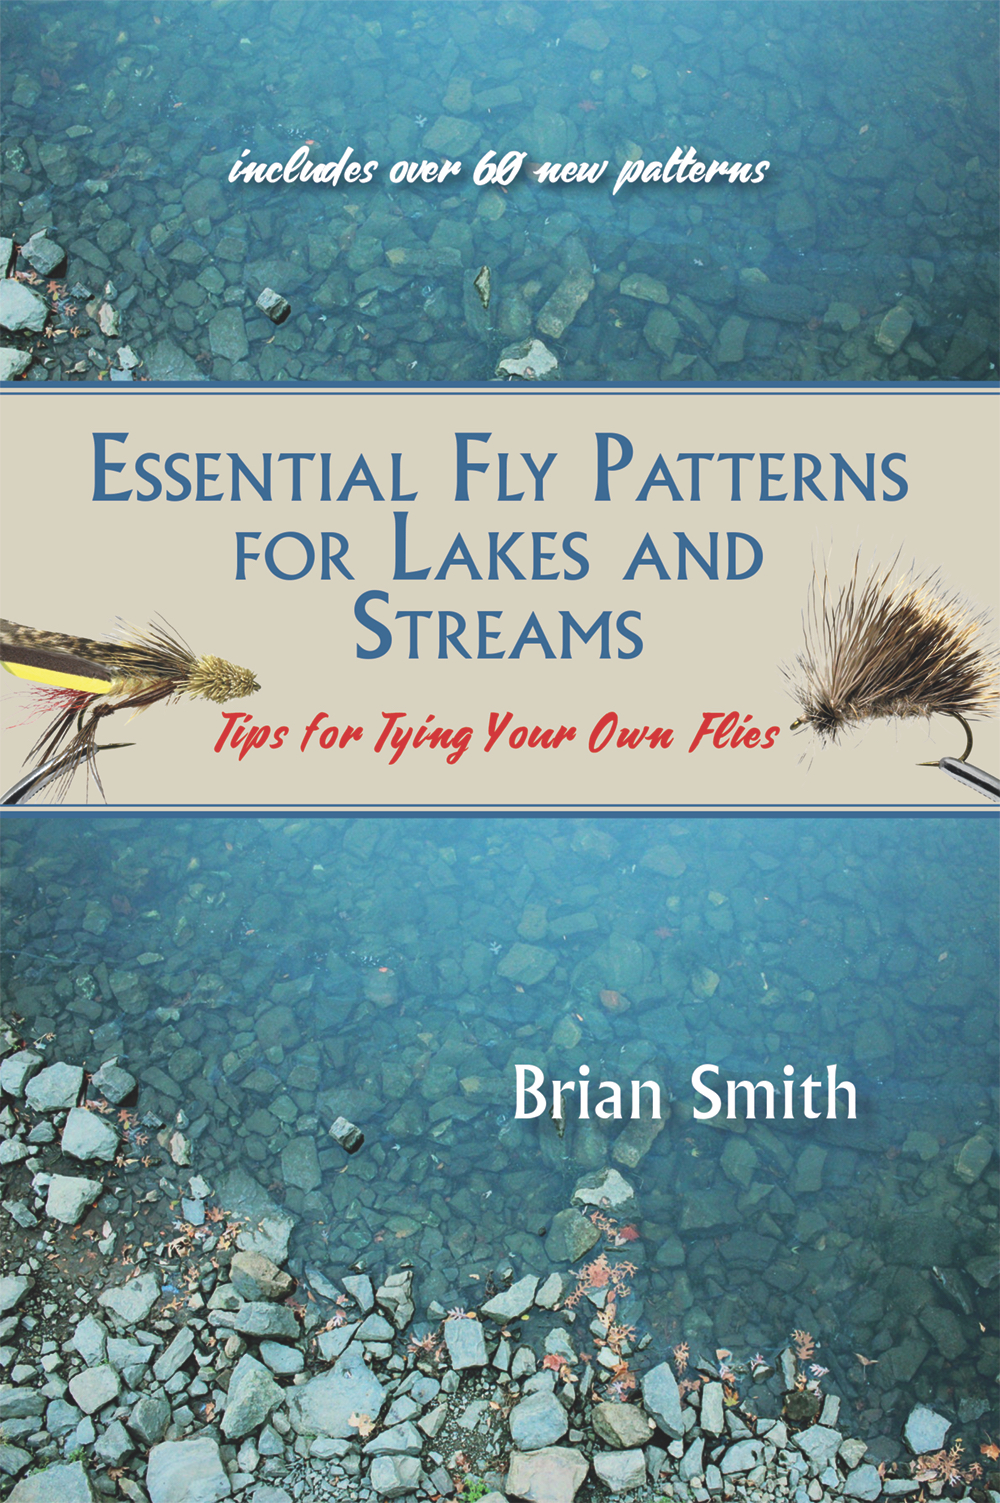 Essential Fly Patterns for Lakes and Streams